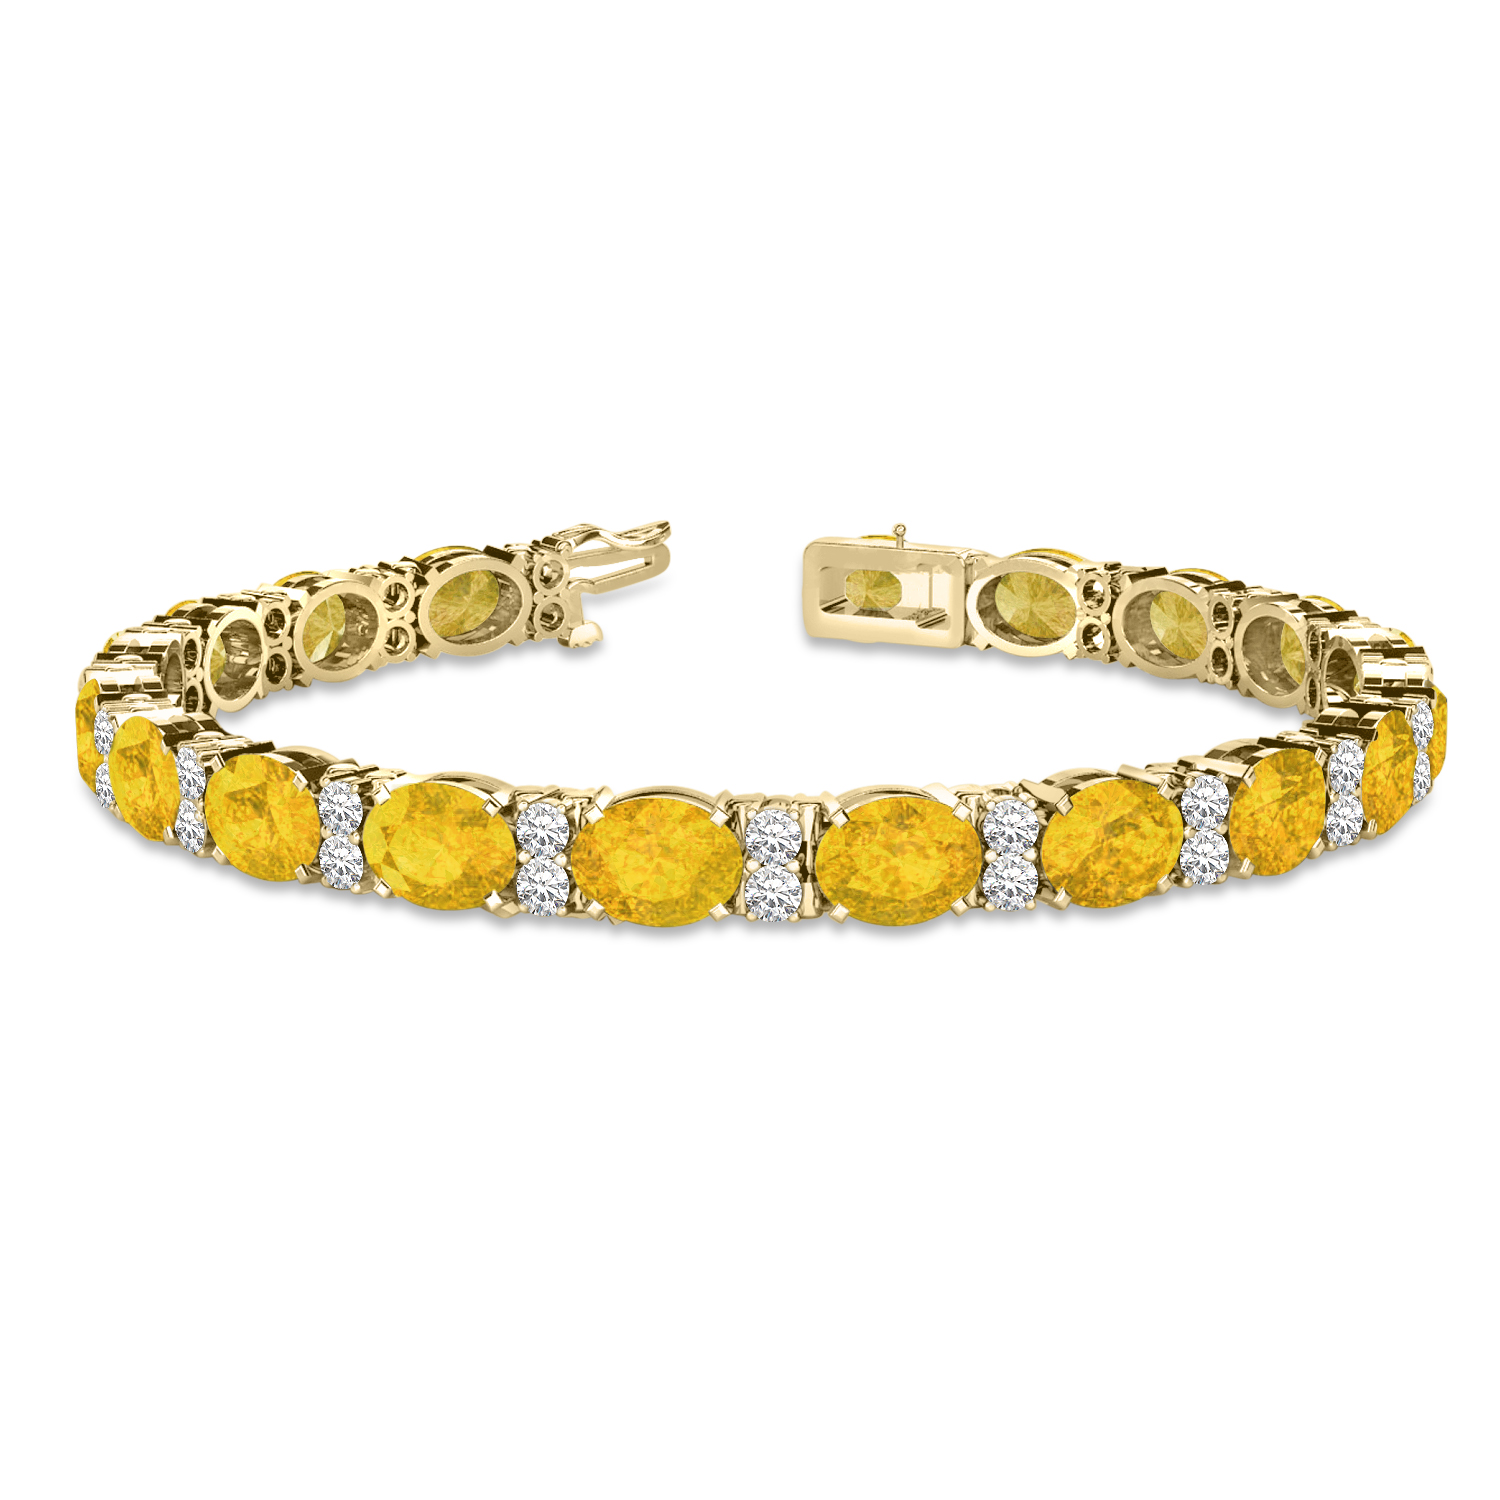 0dd385949e7e24 Diamond & Oval Cut Yellow Sapphire Tennis Bracelet 14k Yellow Gold 13.62ct  - NG10626